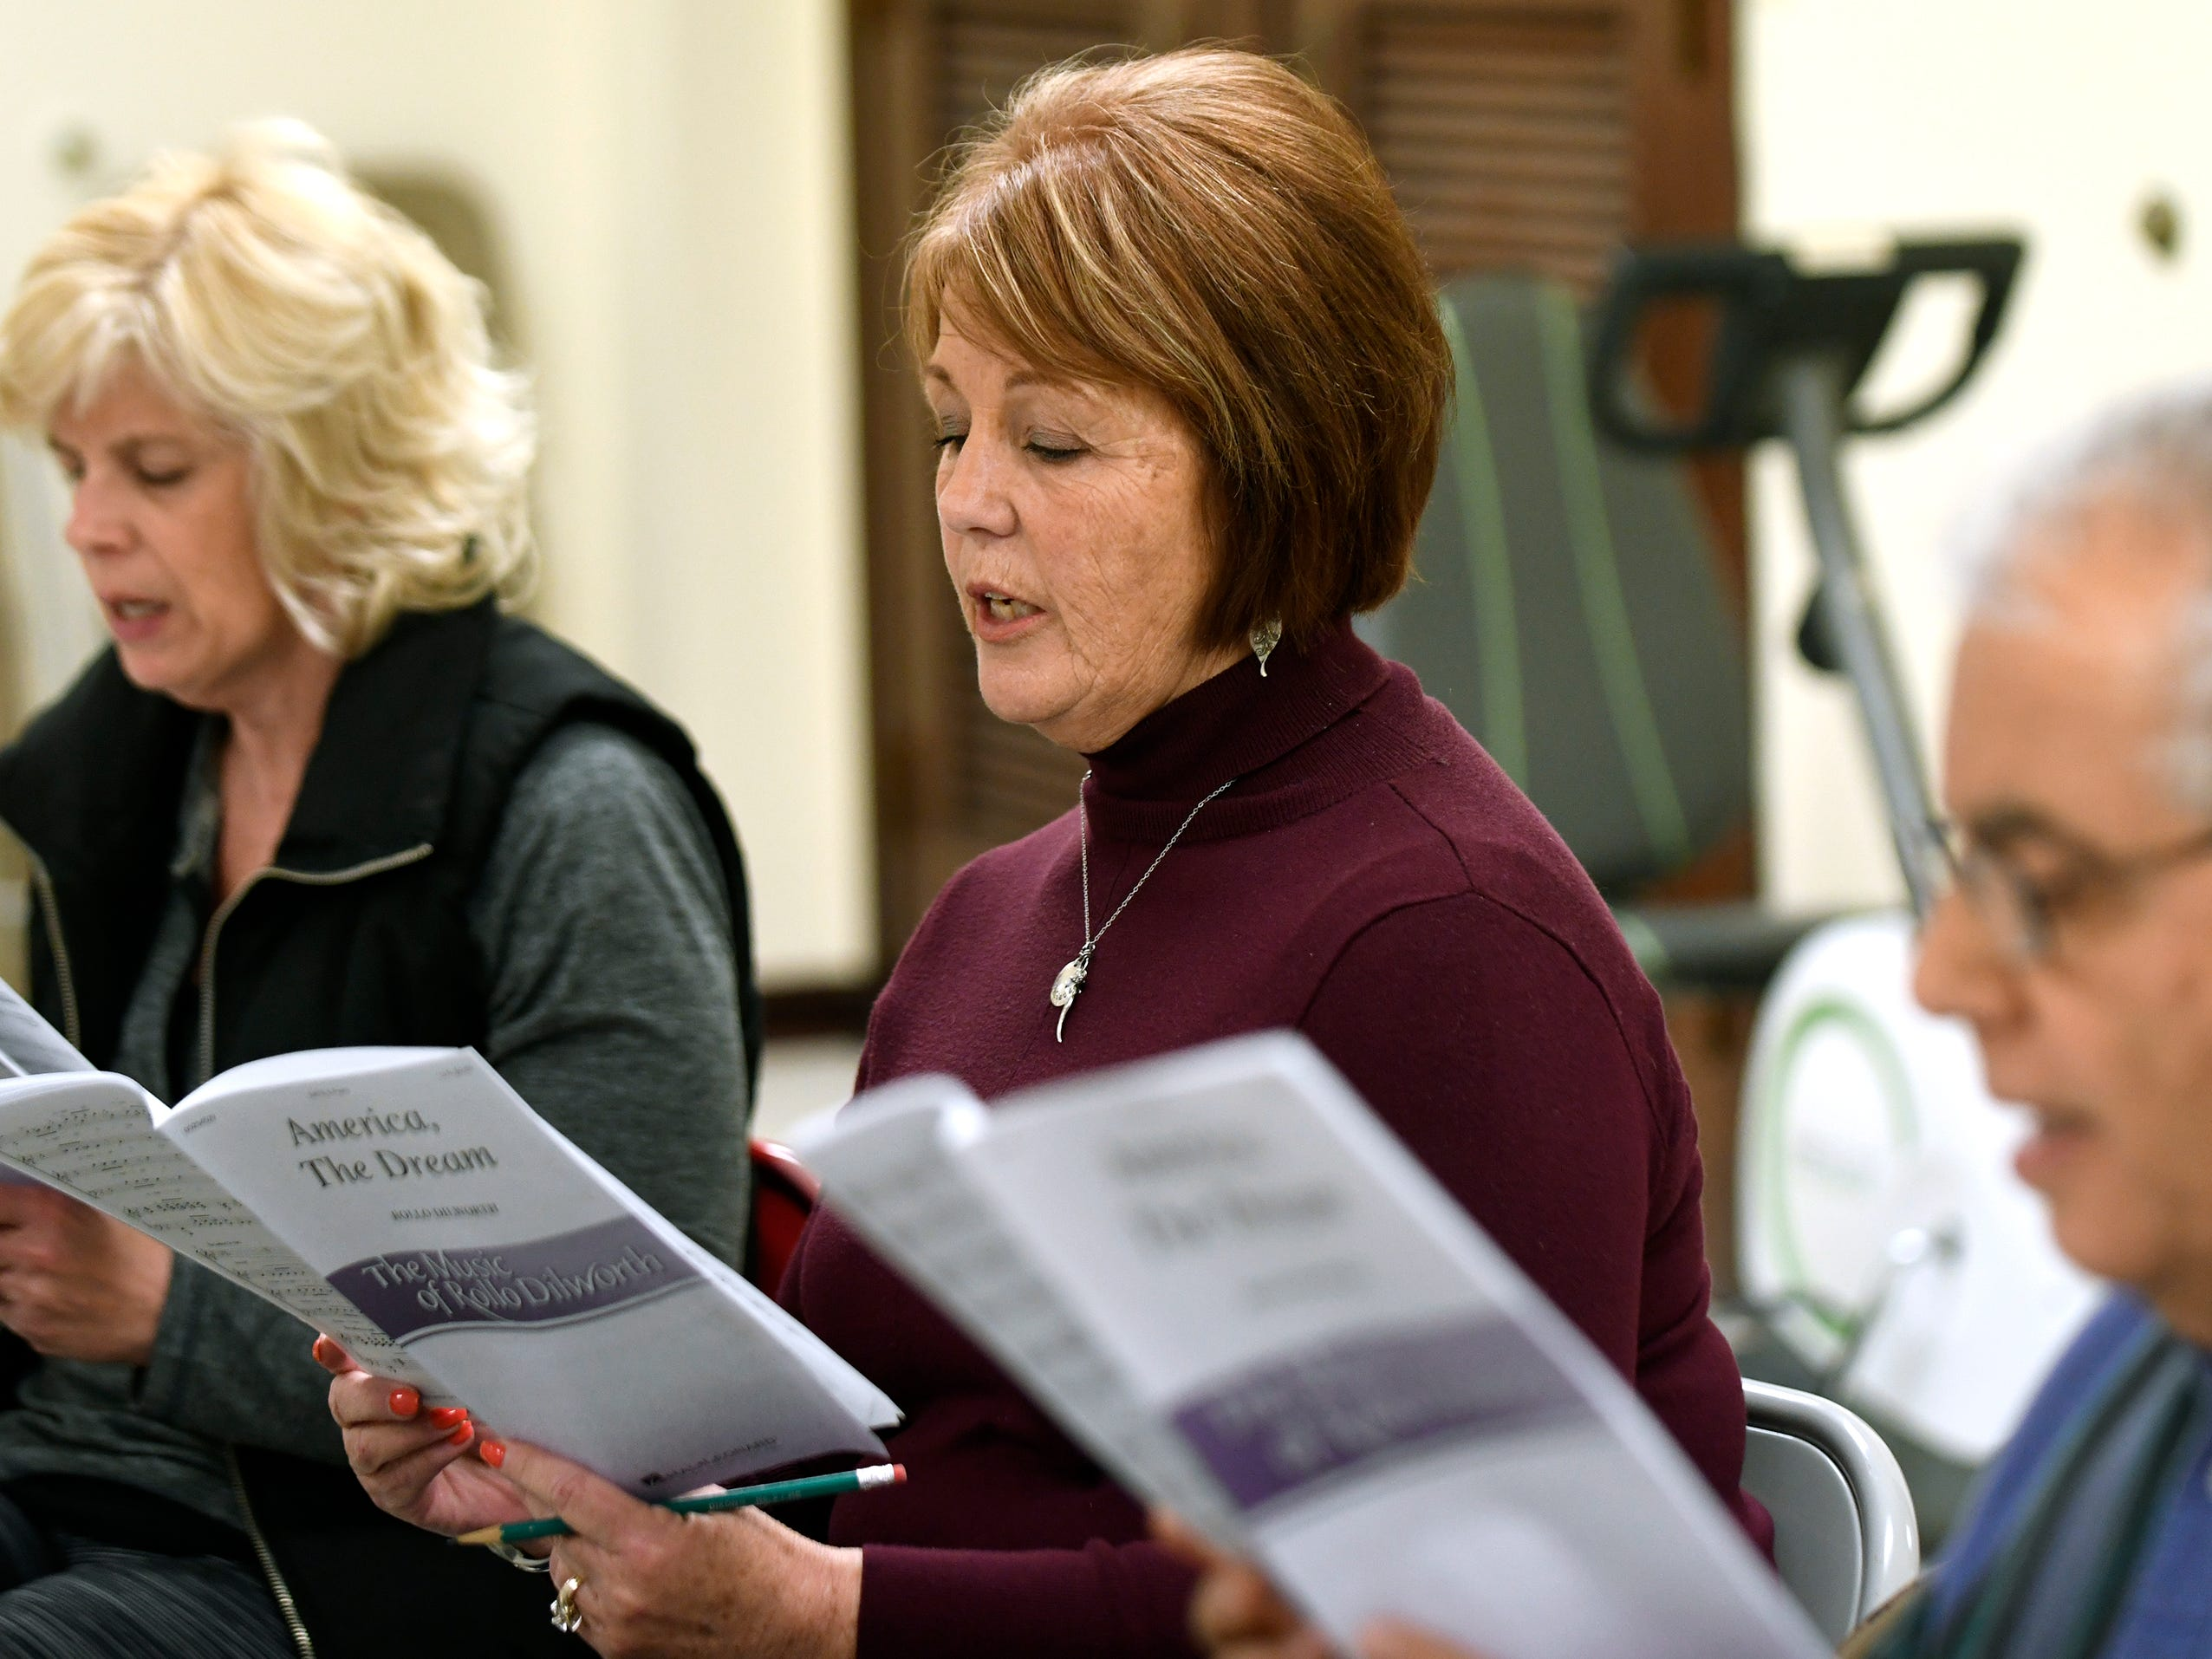 Donna Strain, president of the Singing Ambassadors, sings during rehearsal at the Vineland Senior Center on Monday. After 62 years of entertaining, the group is preparing for their final concert.